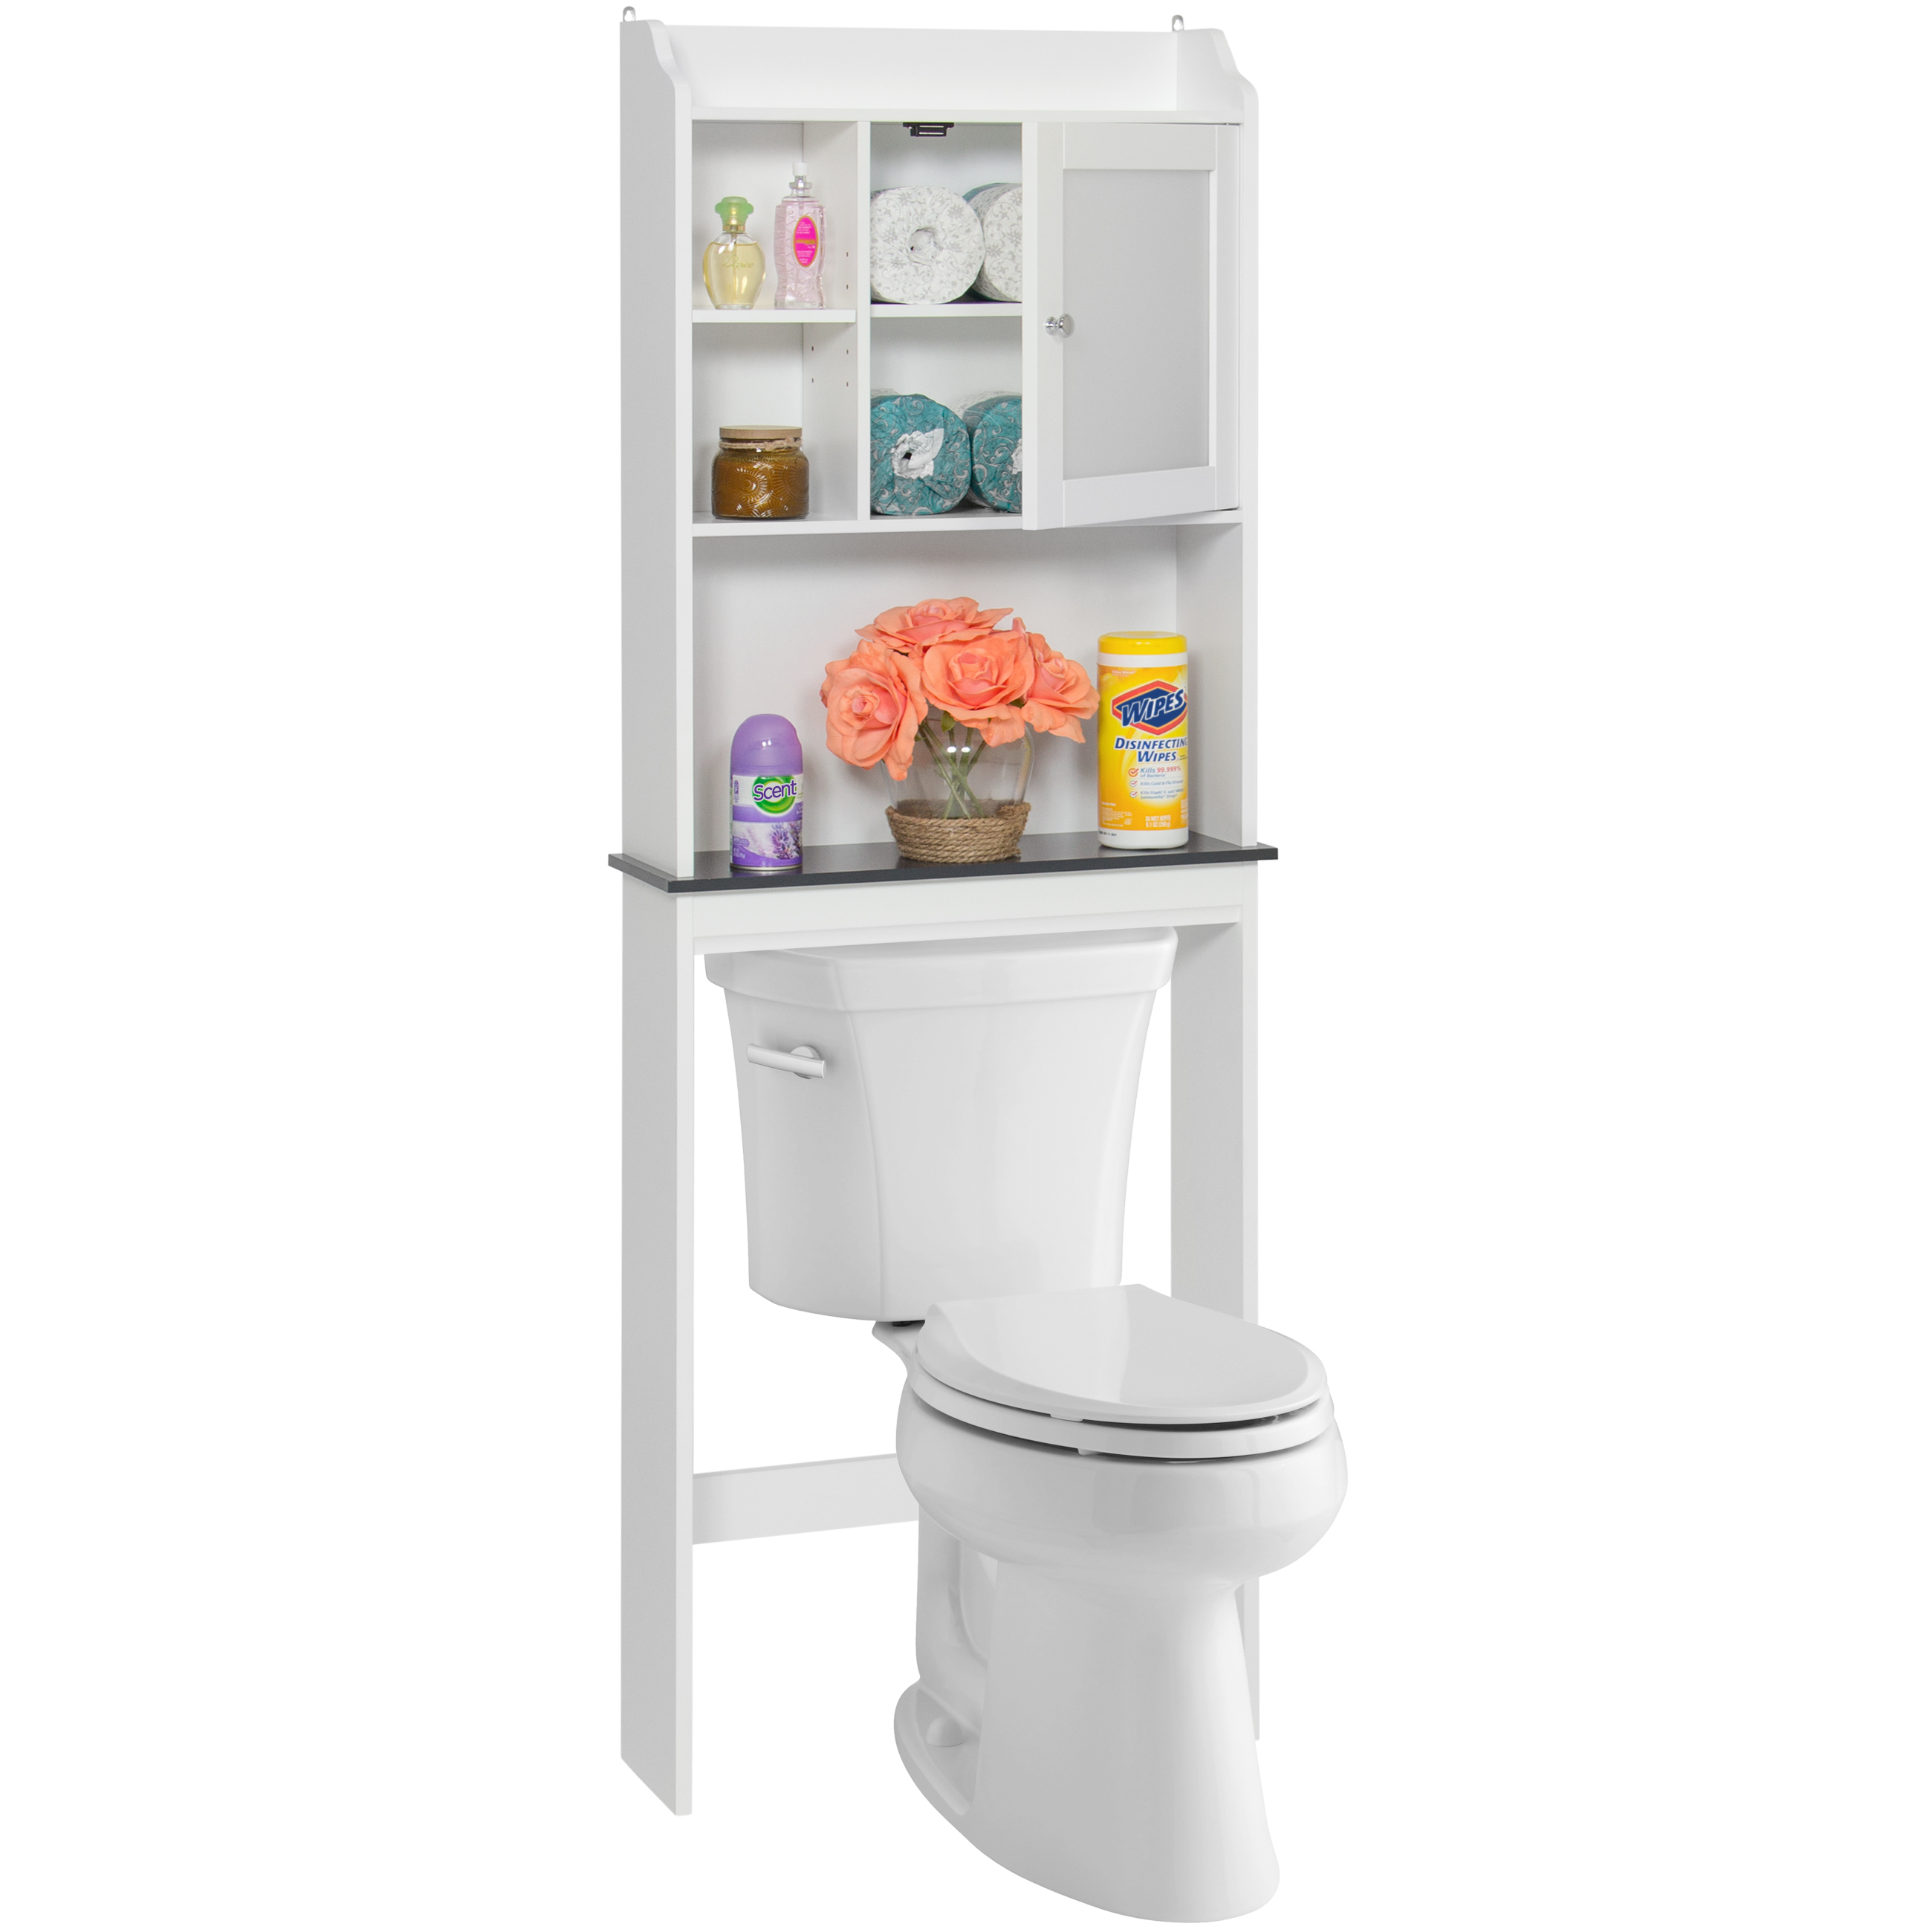 white bathroom space saver best choice products bathroom the toilet space saver 21446